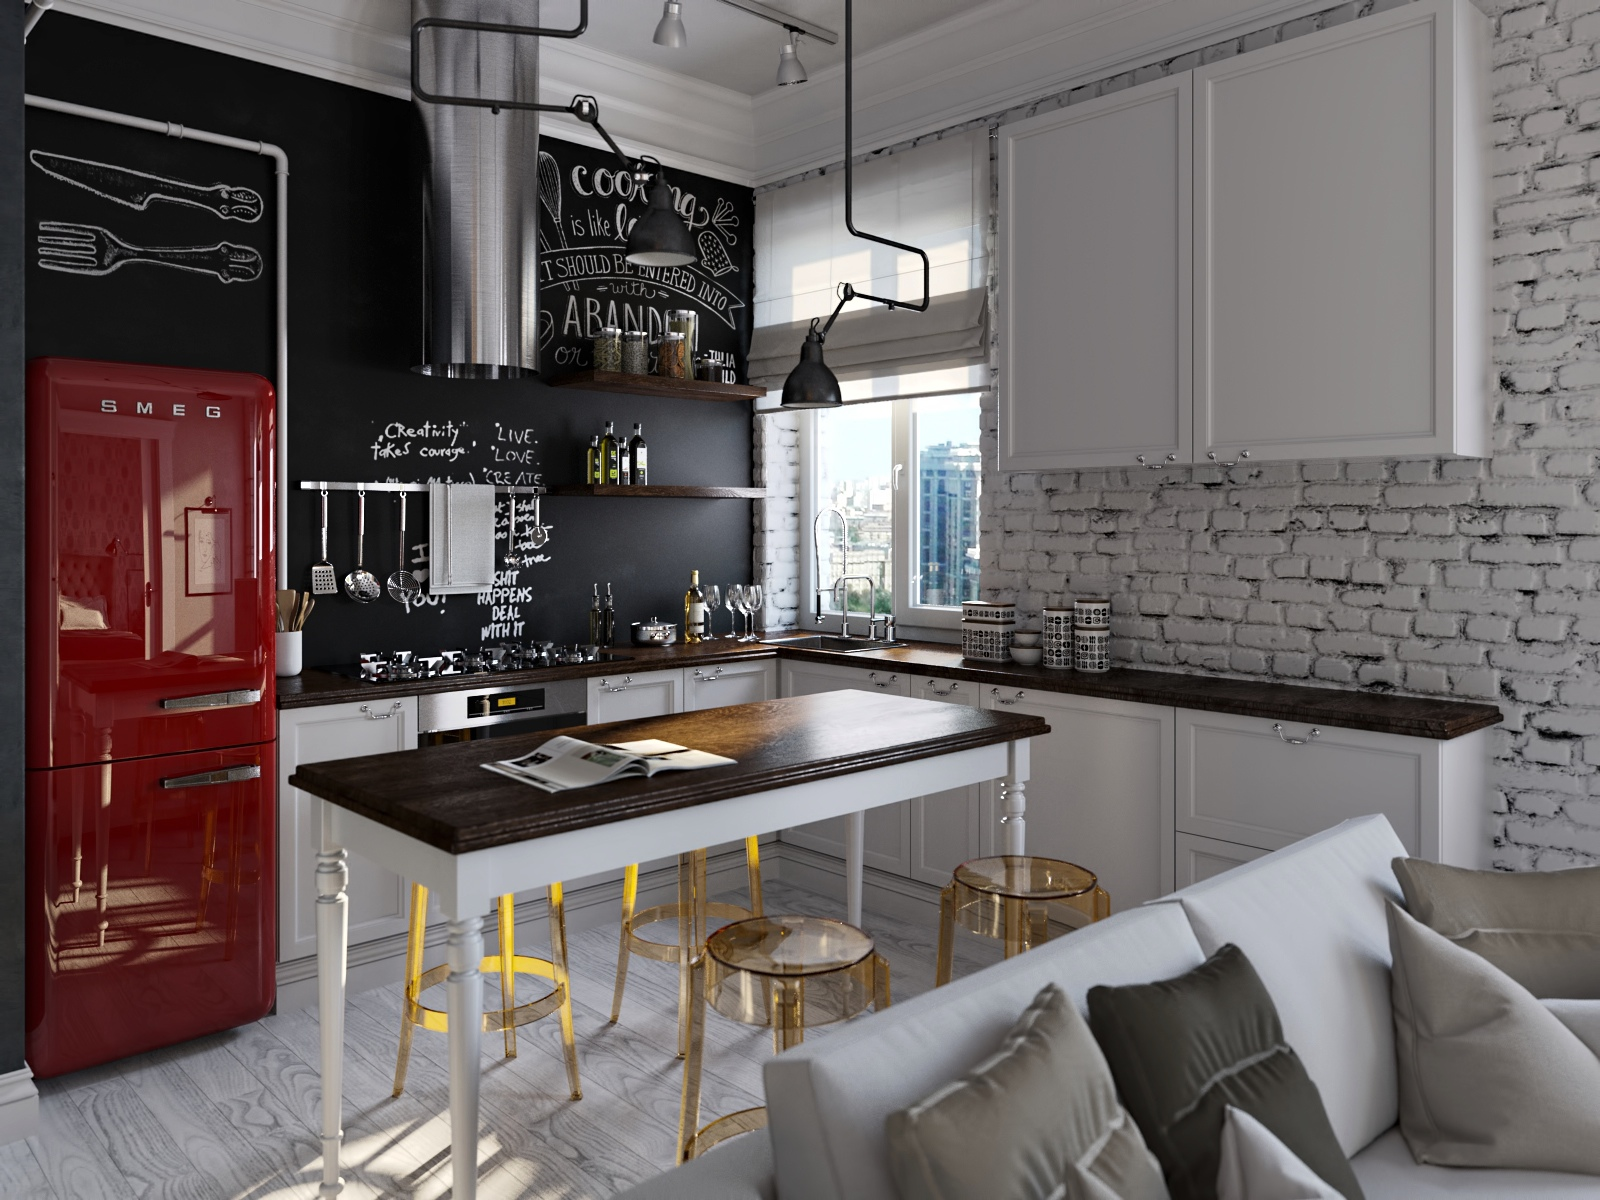 Red smeg fridge interior design ideas.